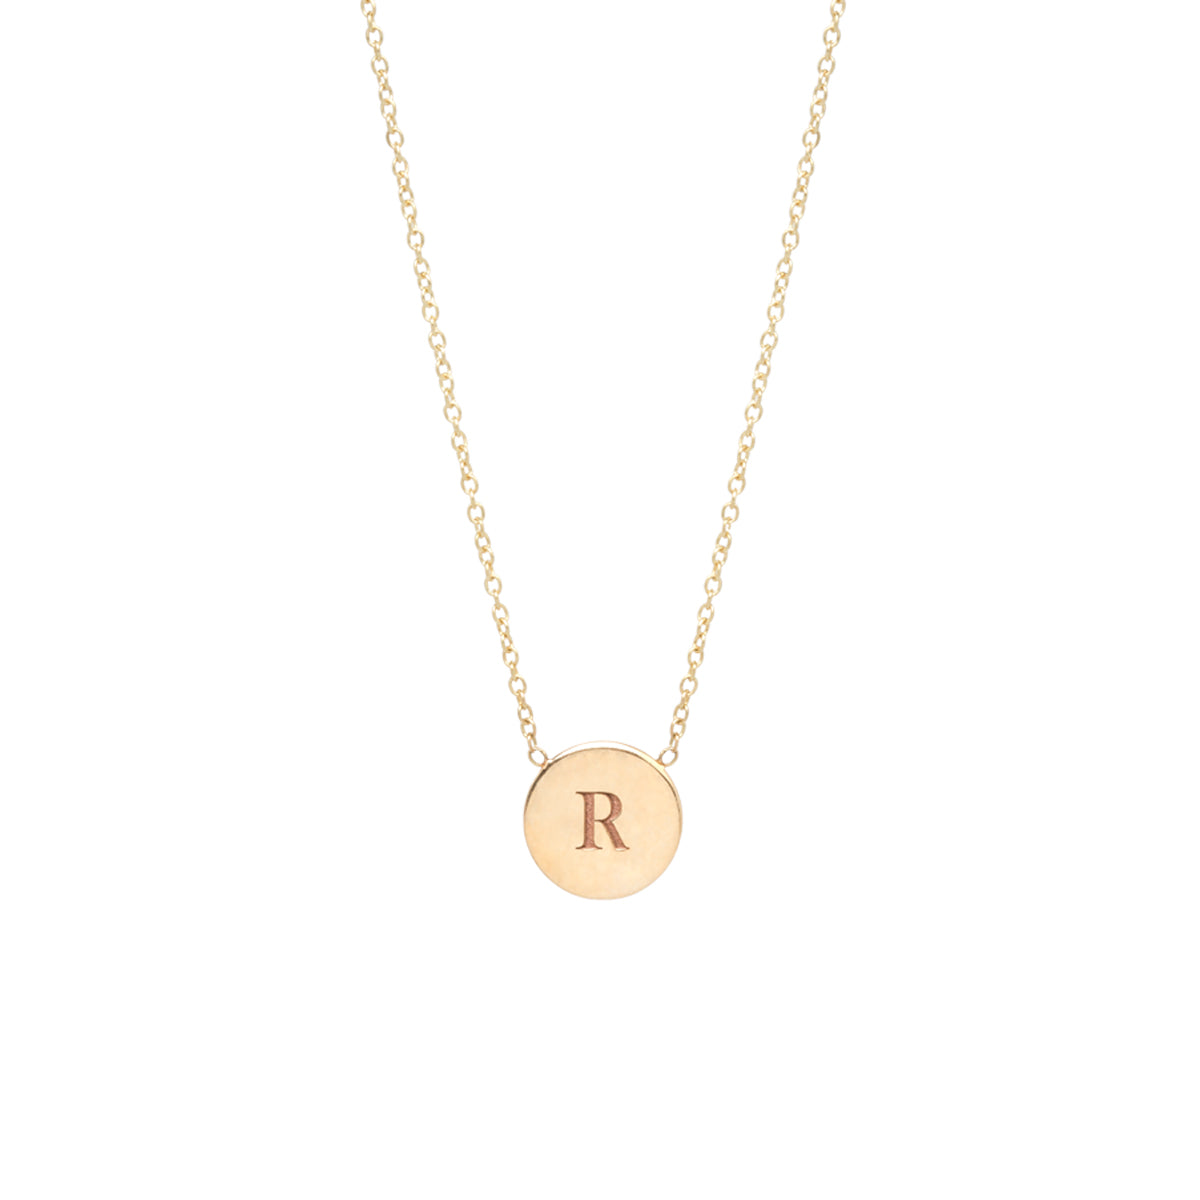 14k small engraved initial disc necklace